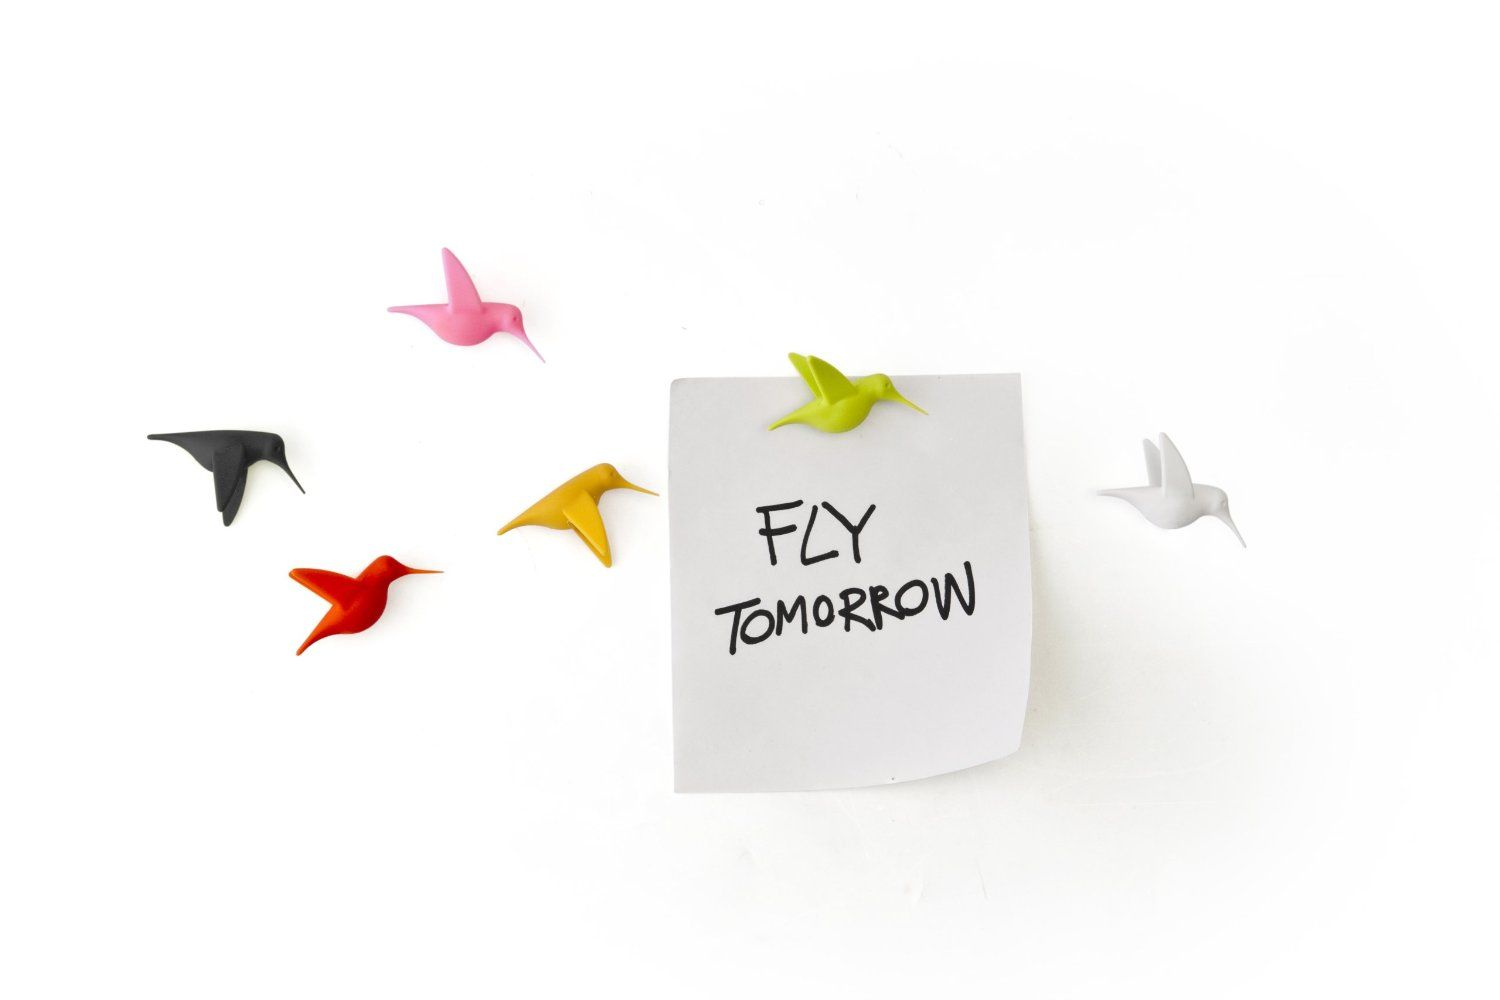 Hummingbird Message Magnets by Qualy. These might just be the cutest magnets ever! $19.99